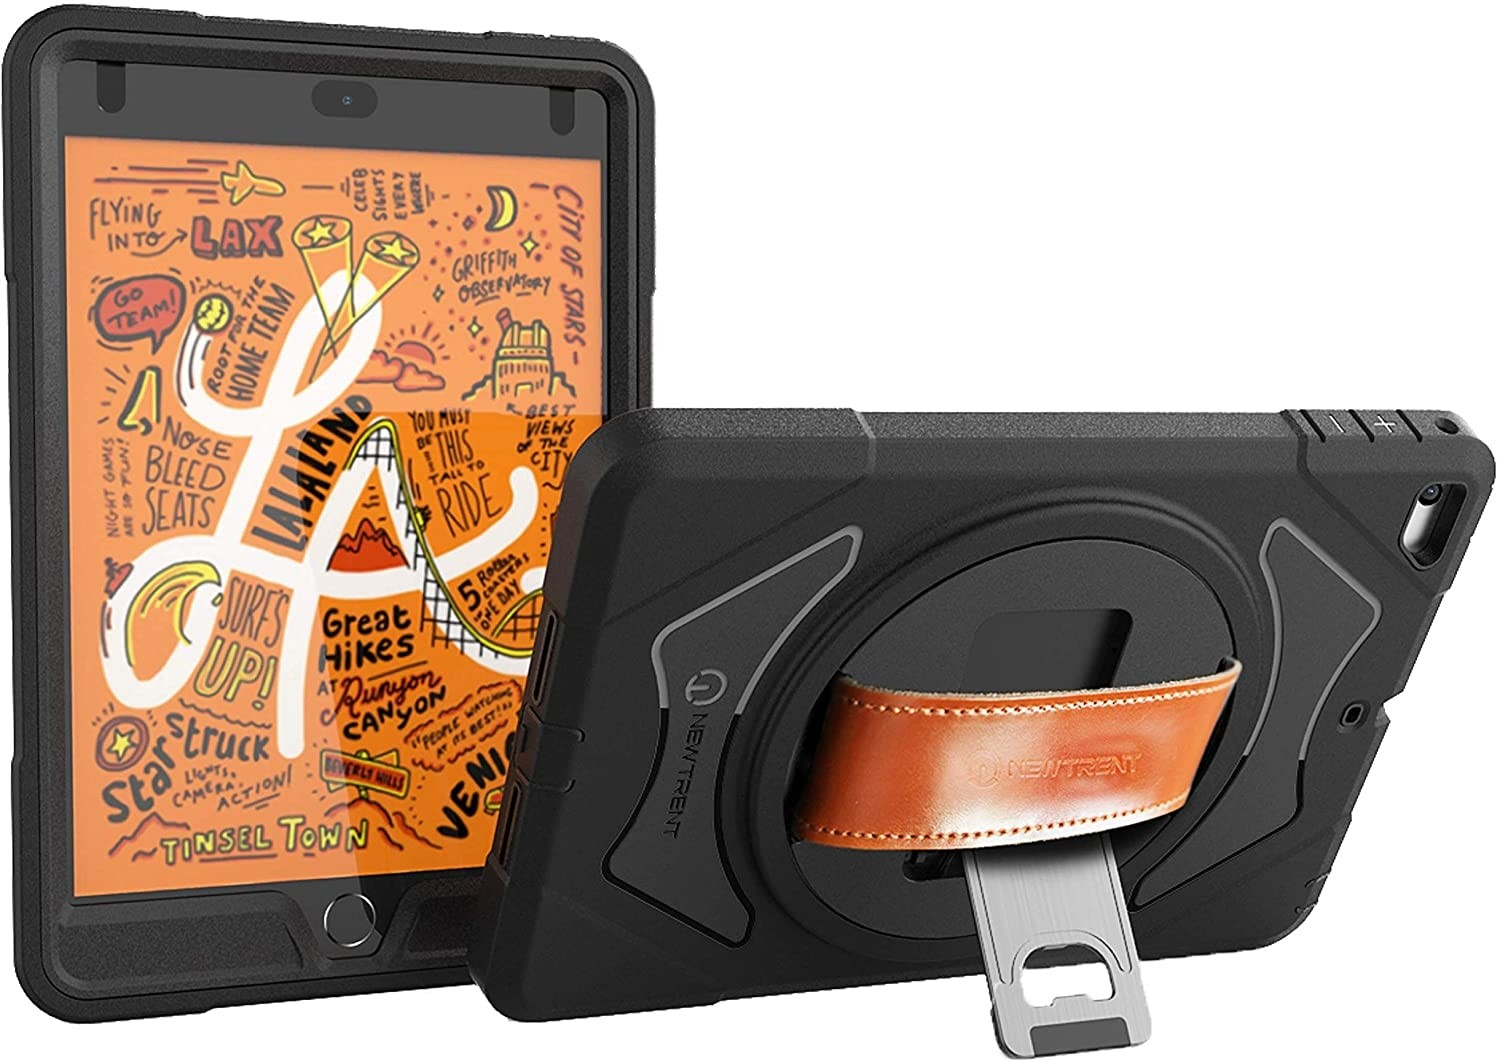 New Trent iPad Case for iPad Mini 4, iPad Mini 5 - iPad Case with 360 Degree Rotation & Leather Hand Strap & Built-in Stand, Rugged iPad Case with Screen Protector (not for Mini 1/2/3), NT621GR